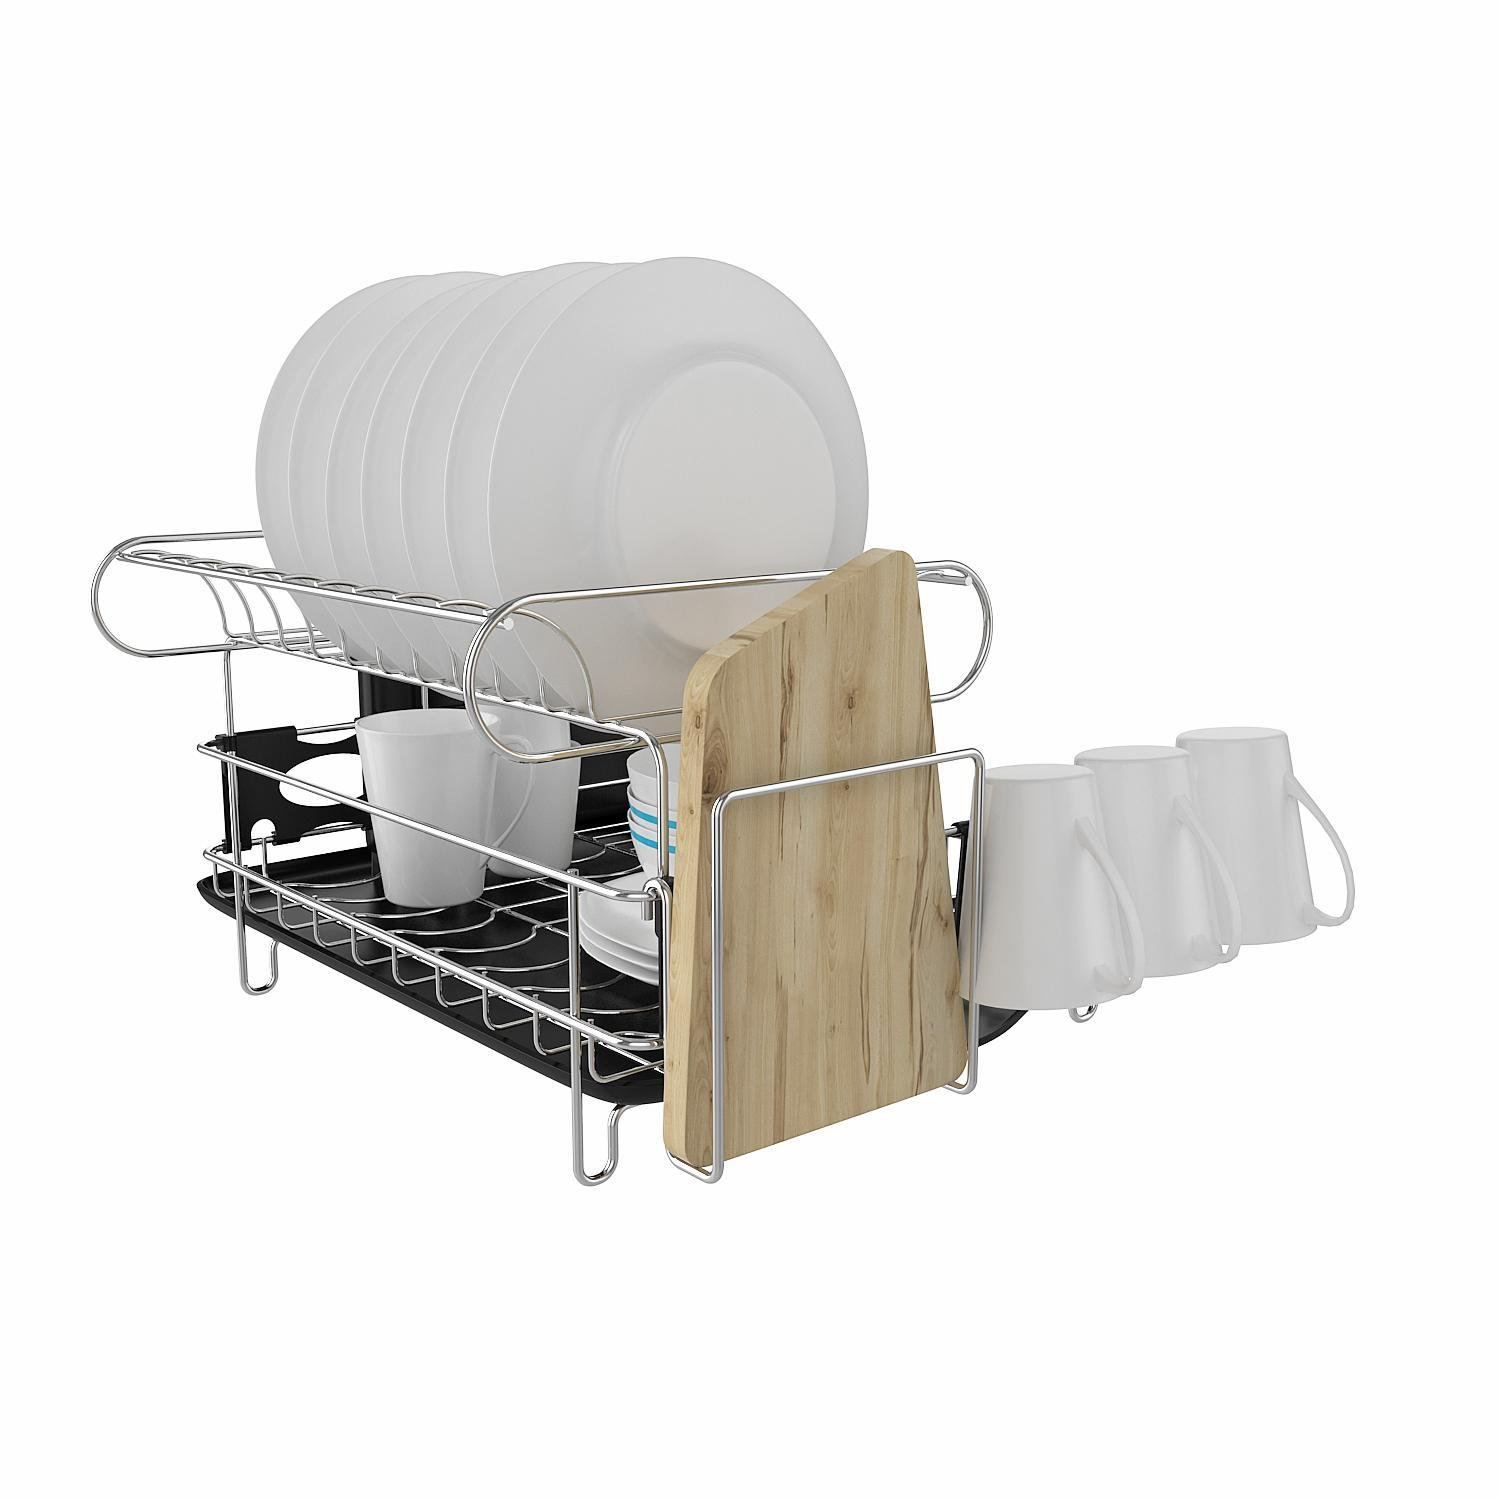 Mewalker 2 Tier Dish Drying Rack 304 Stainless Steel Professional Dish Rack with Microfiber Mat Drain Board and Cutlery Holder, Black by Mewalker (Image #5)